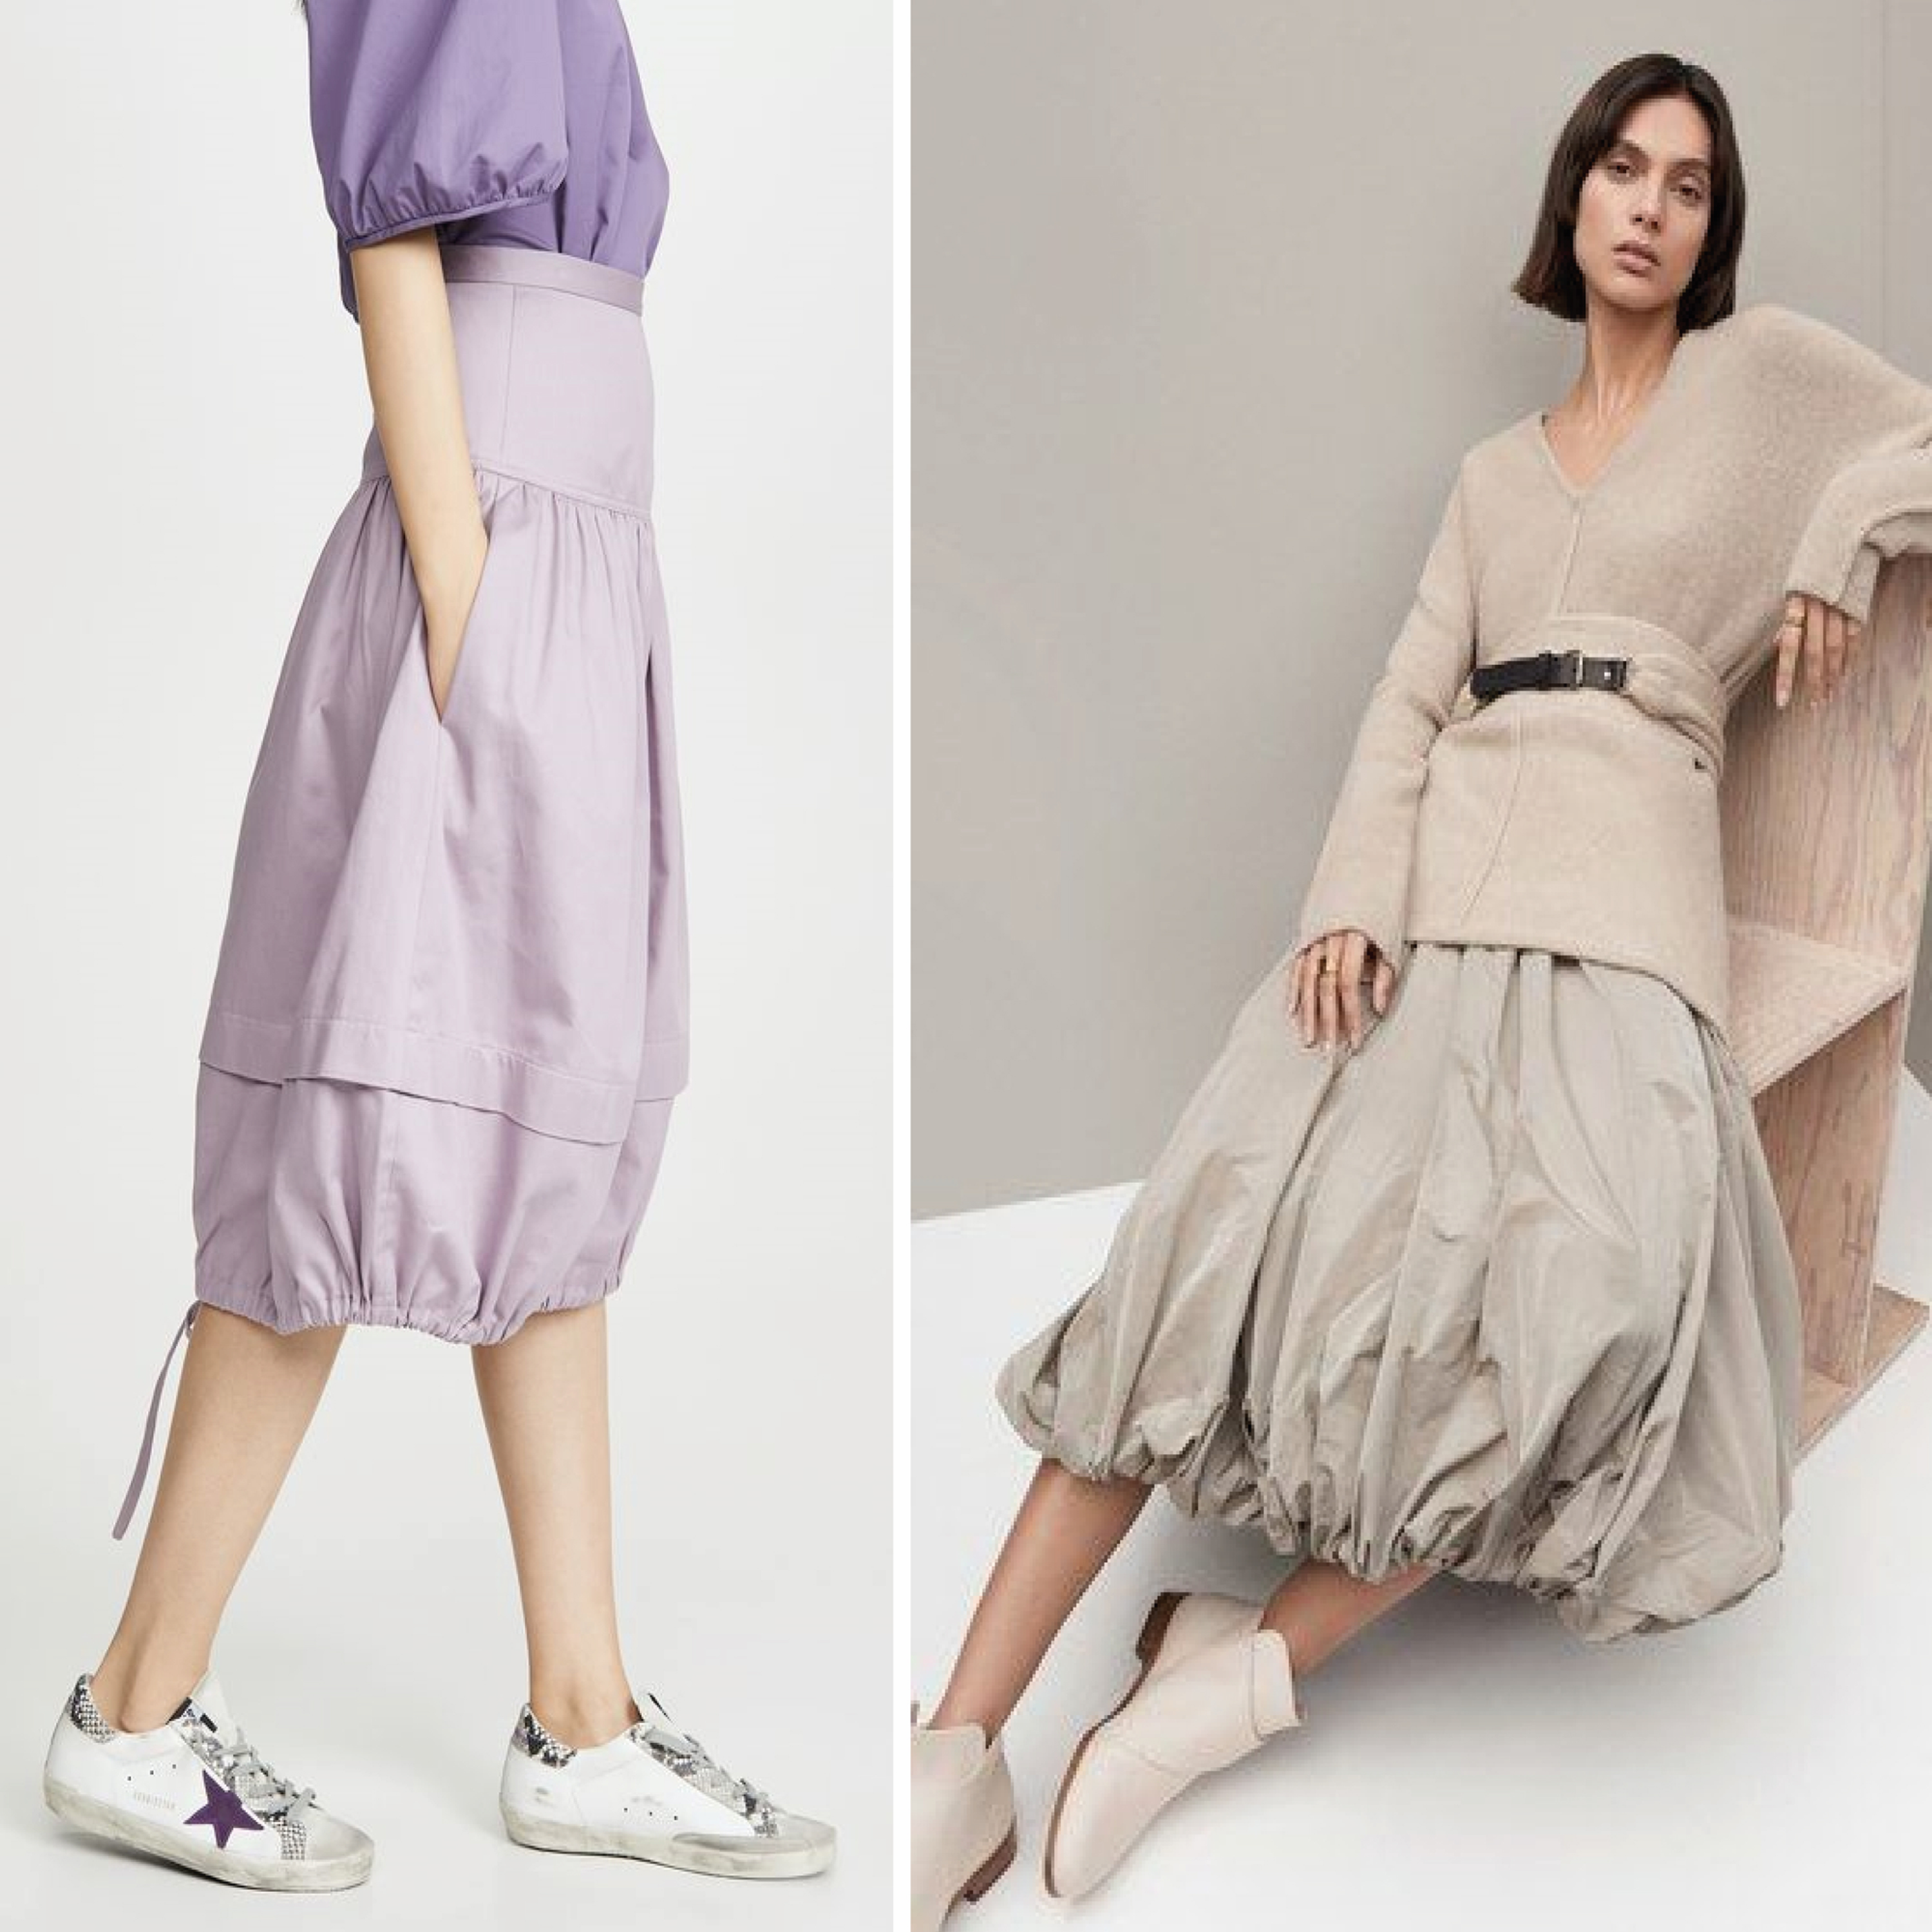 SPRING/SUMMER 7 WOMENS SKIRTS TREND FORECAST  Fashion trend